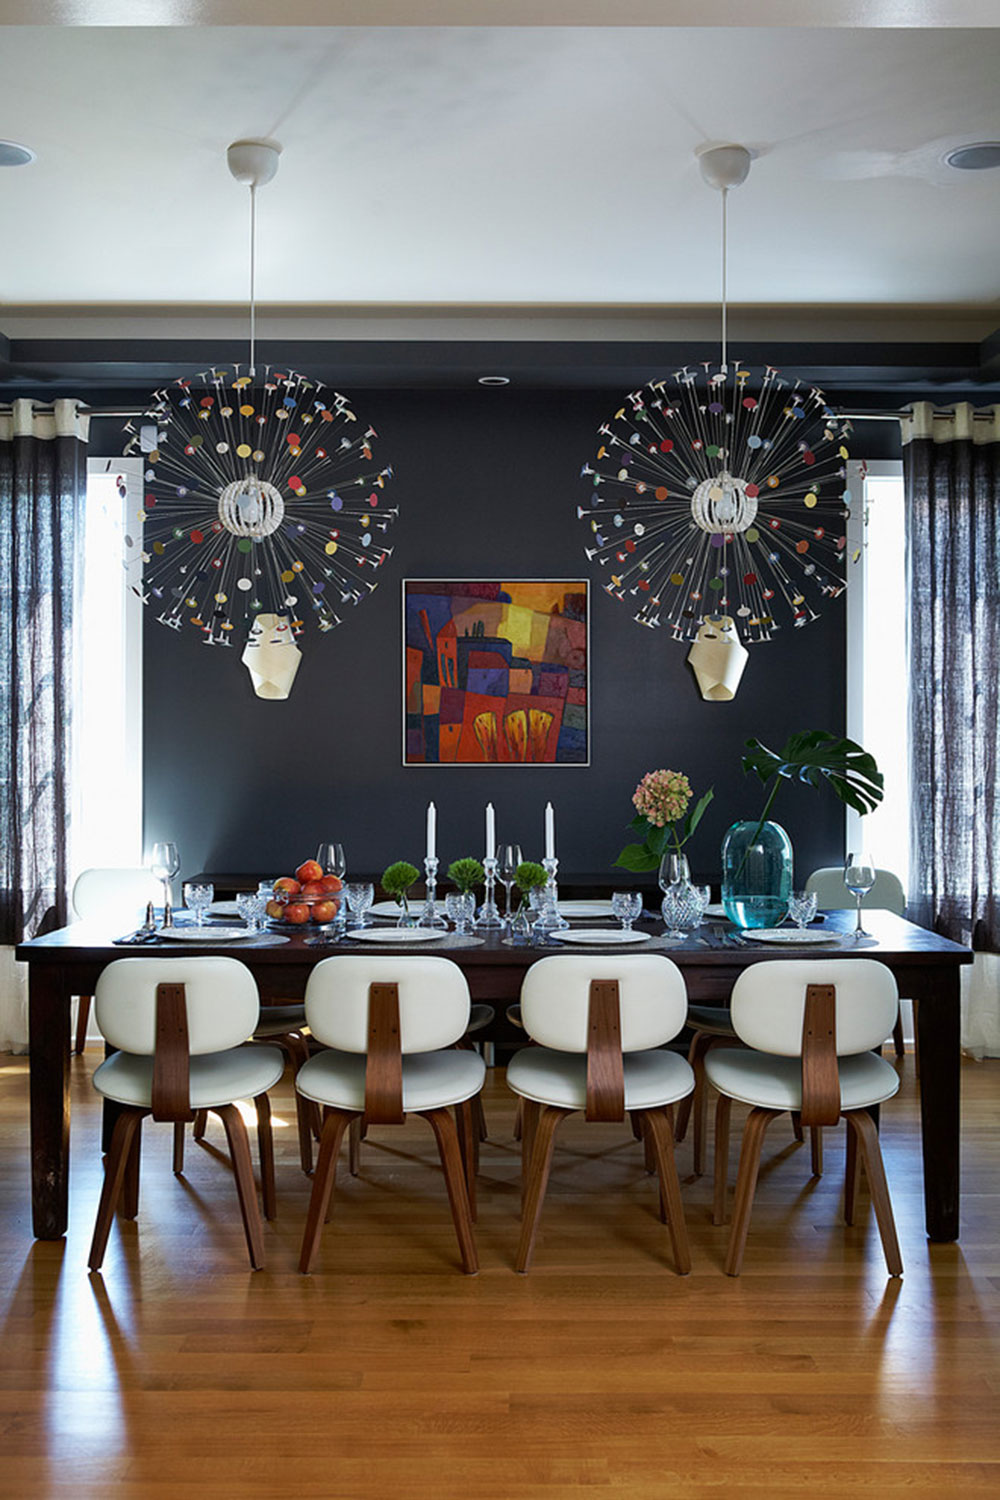 Tips For Choosing The Right Dining Chairs 7 Tips For Choosing The Right Dining Chairs